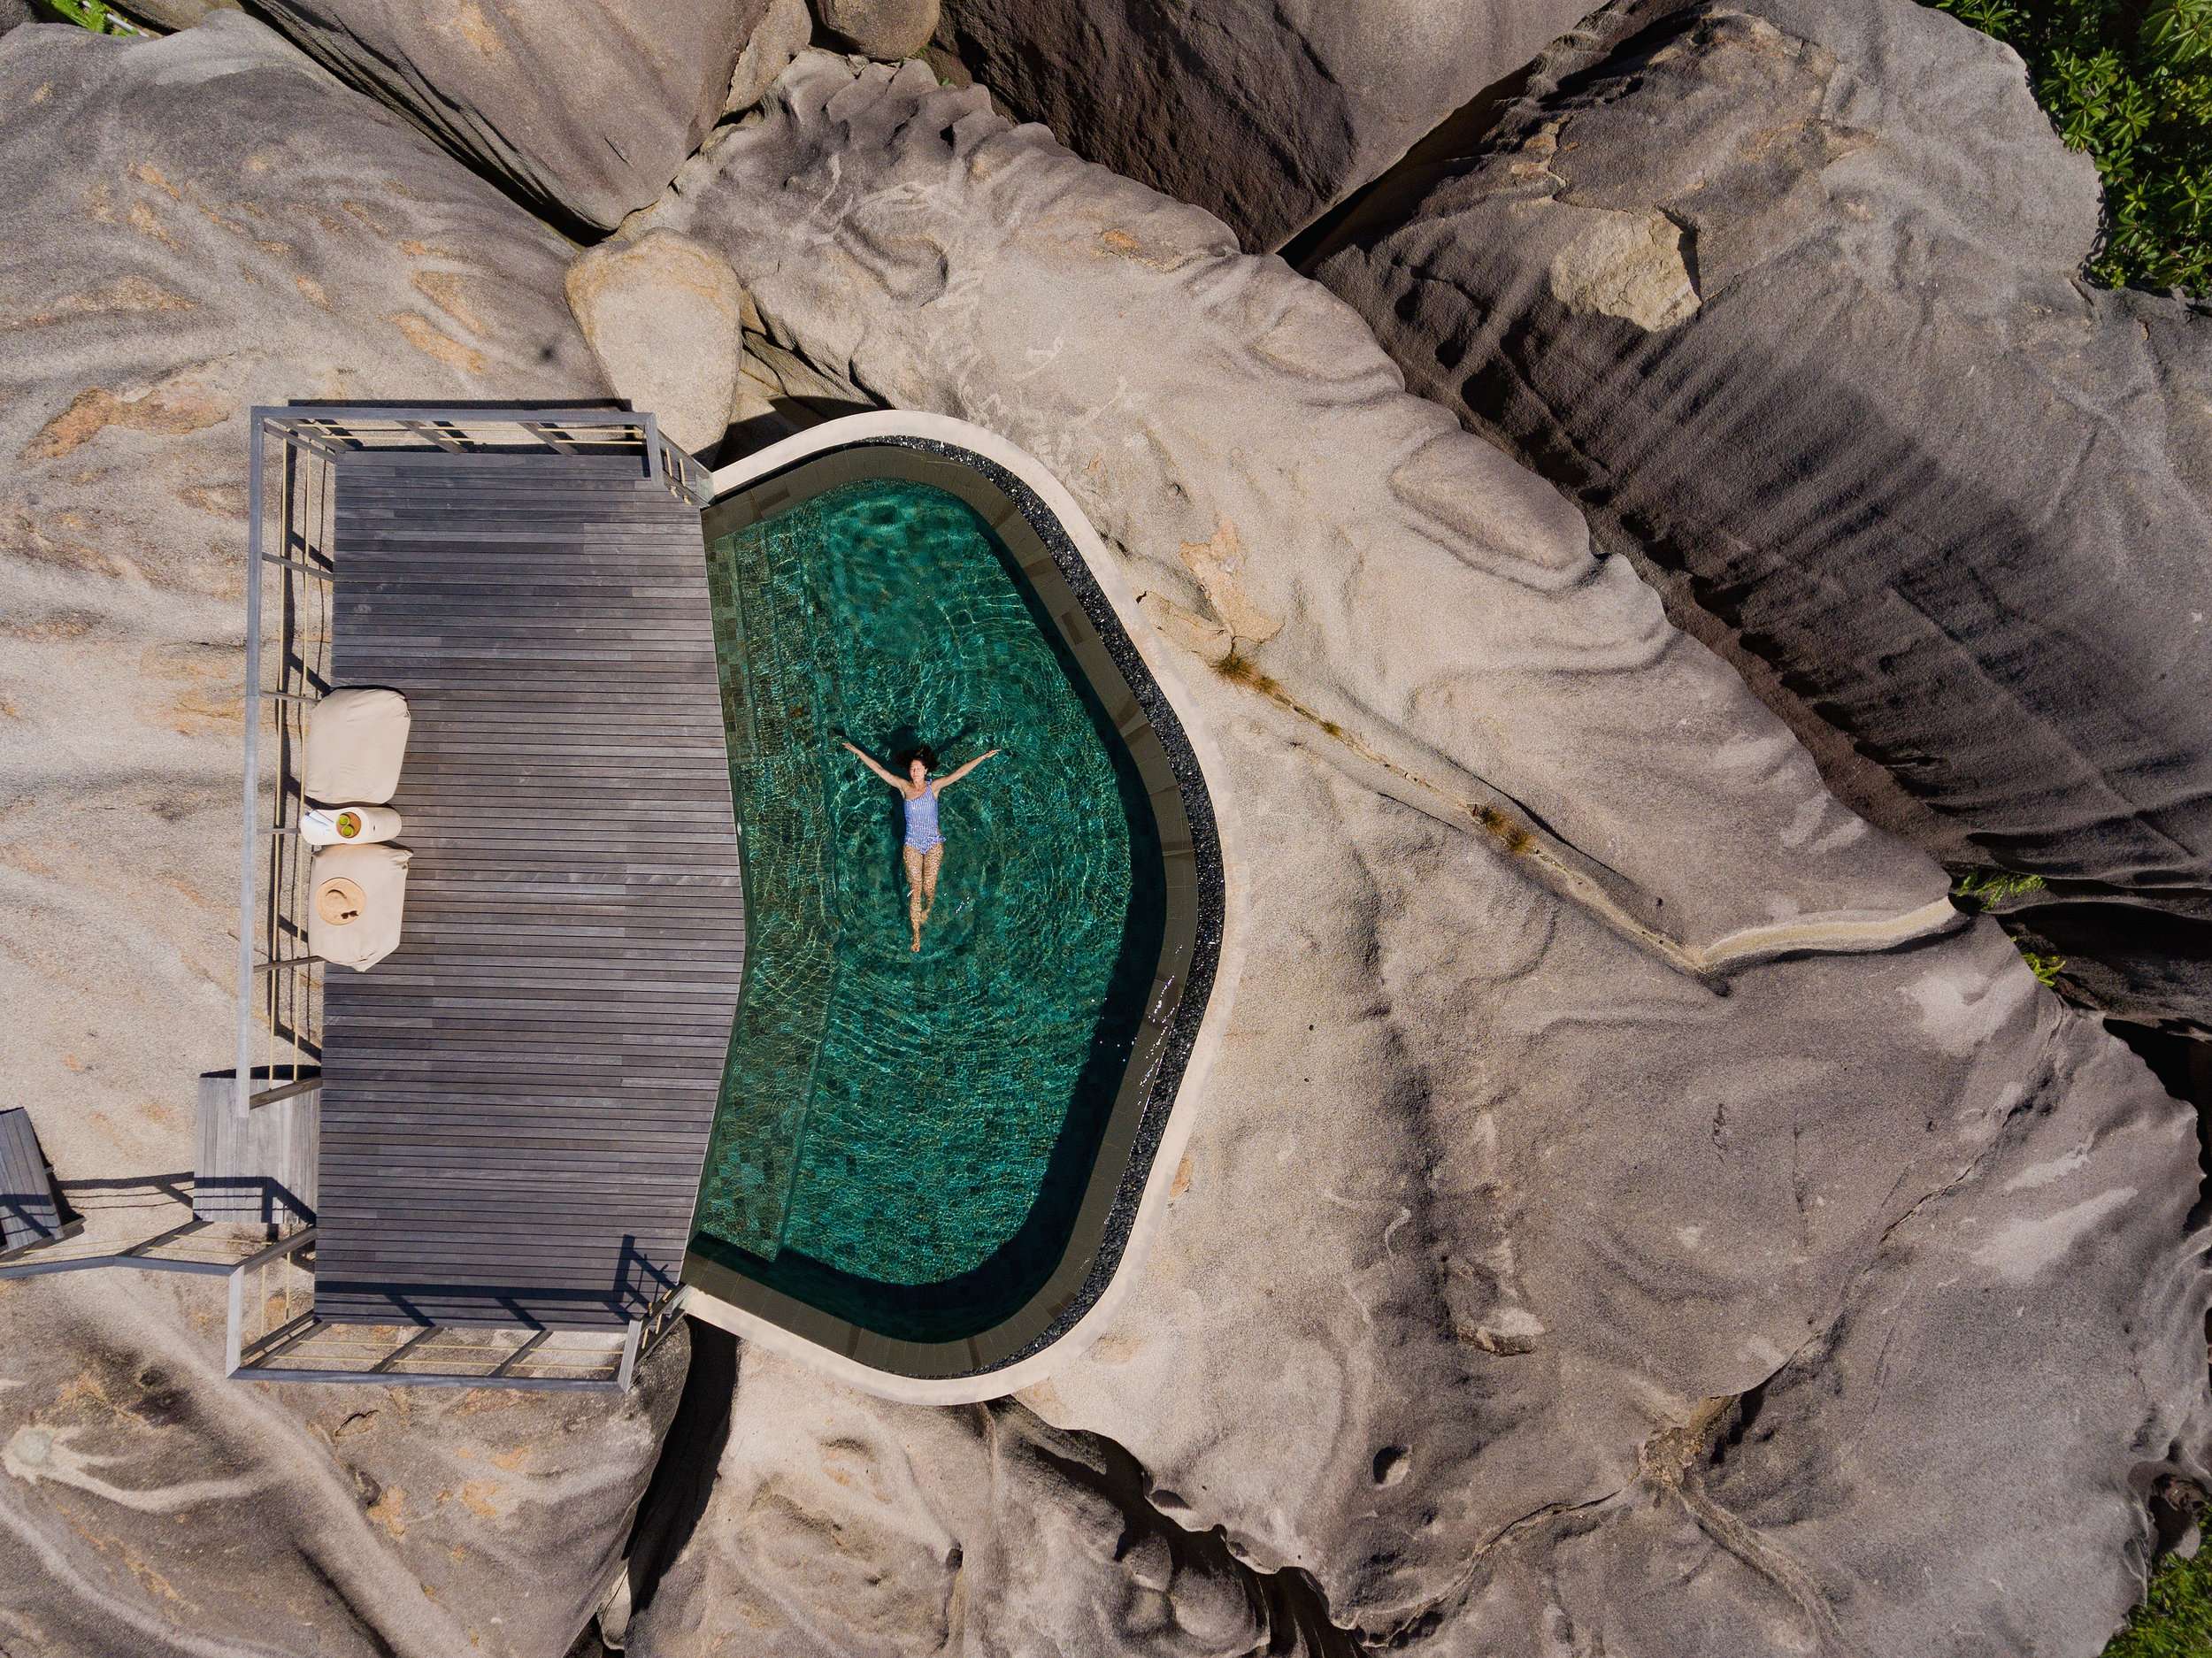 Spa_Aerial_Spa-Pool-Guest2_[8182-ORIGINAL].jpg